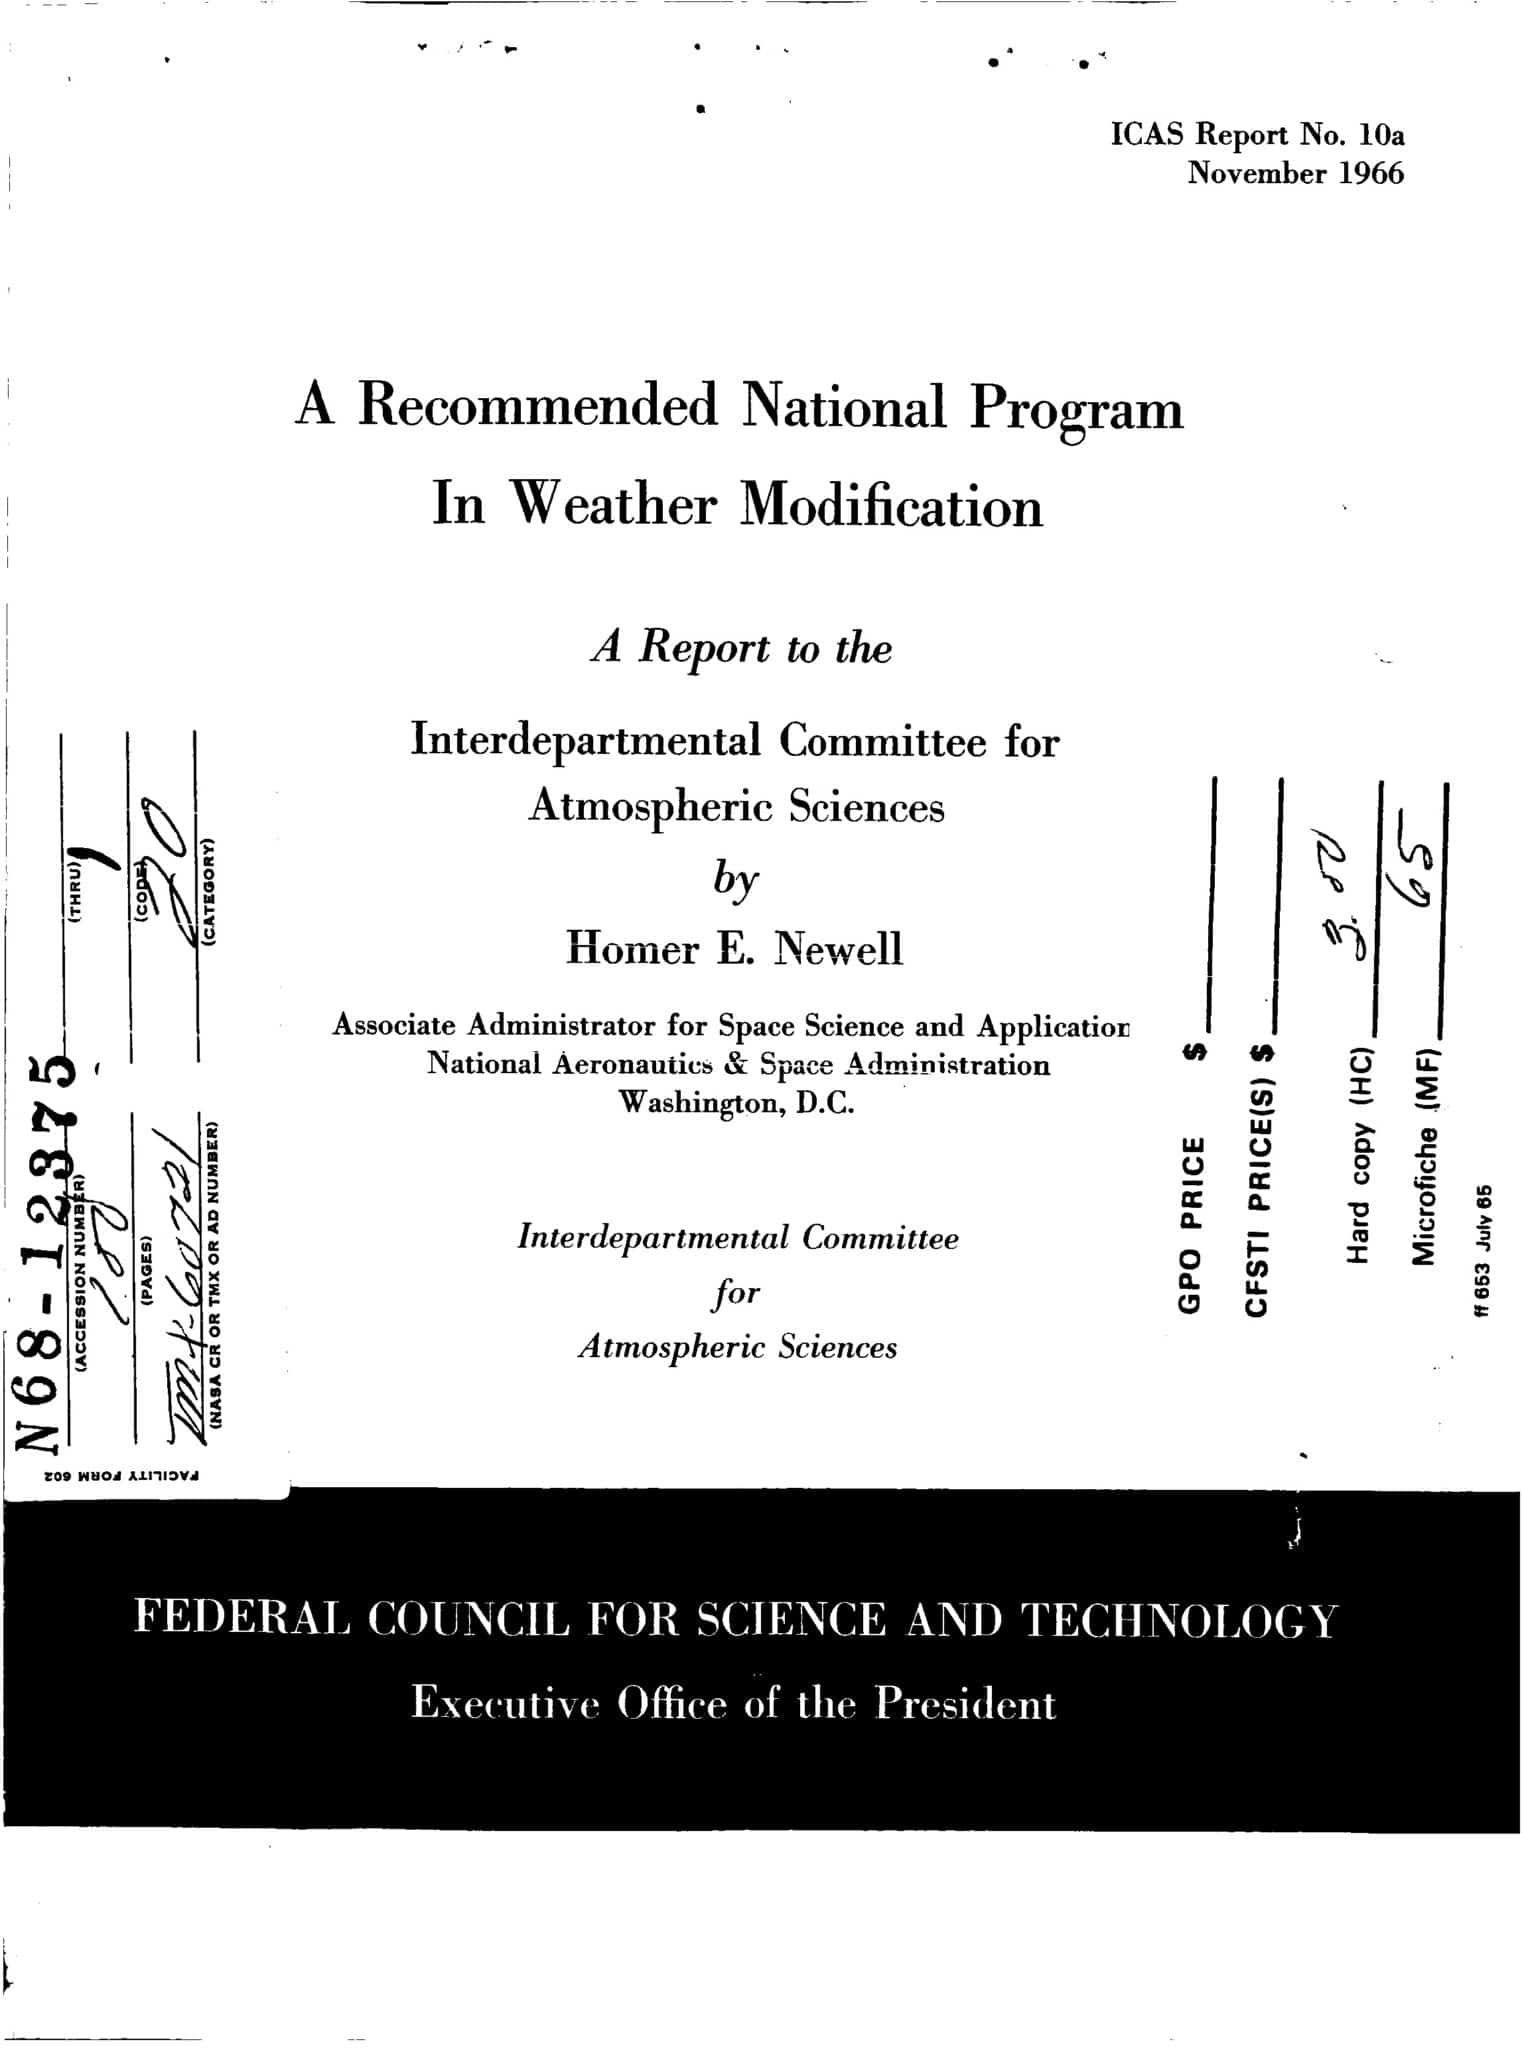 Geoengineering Documents